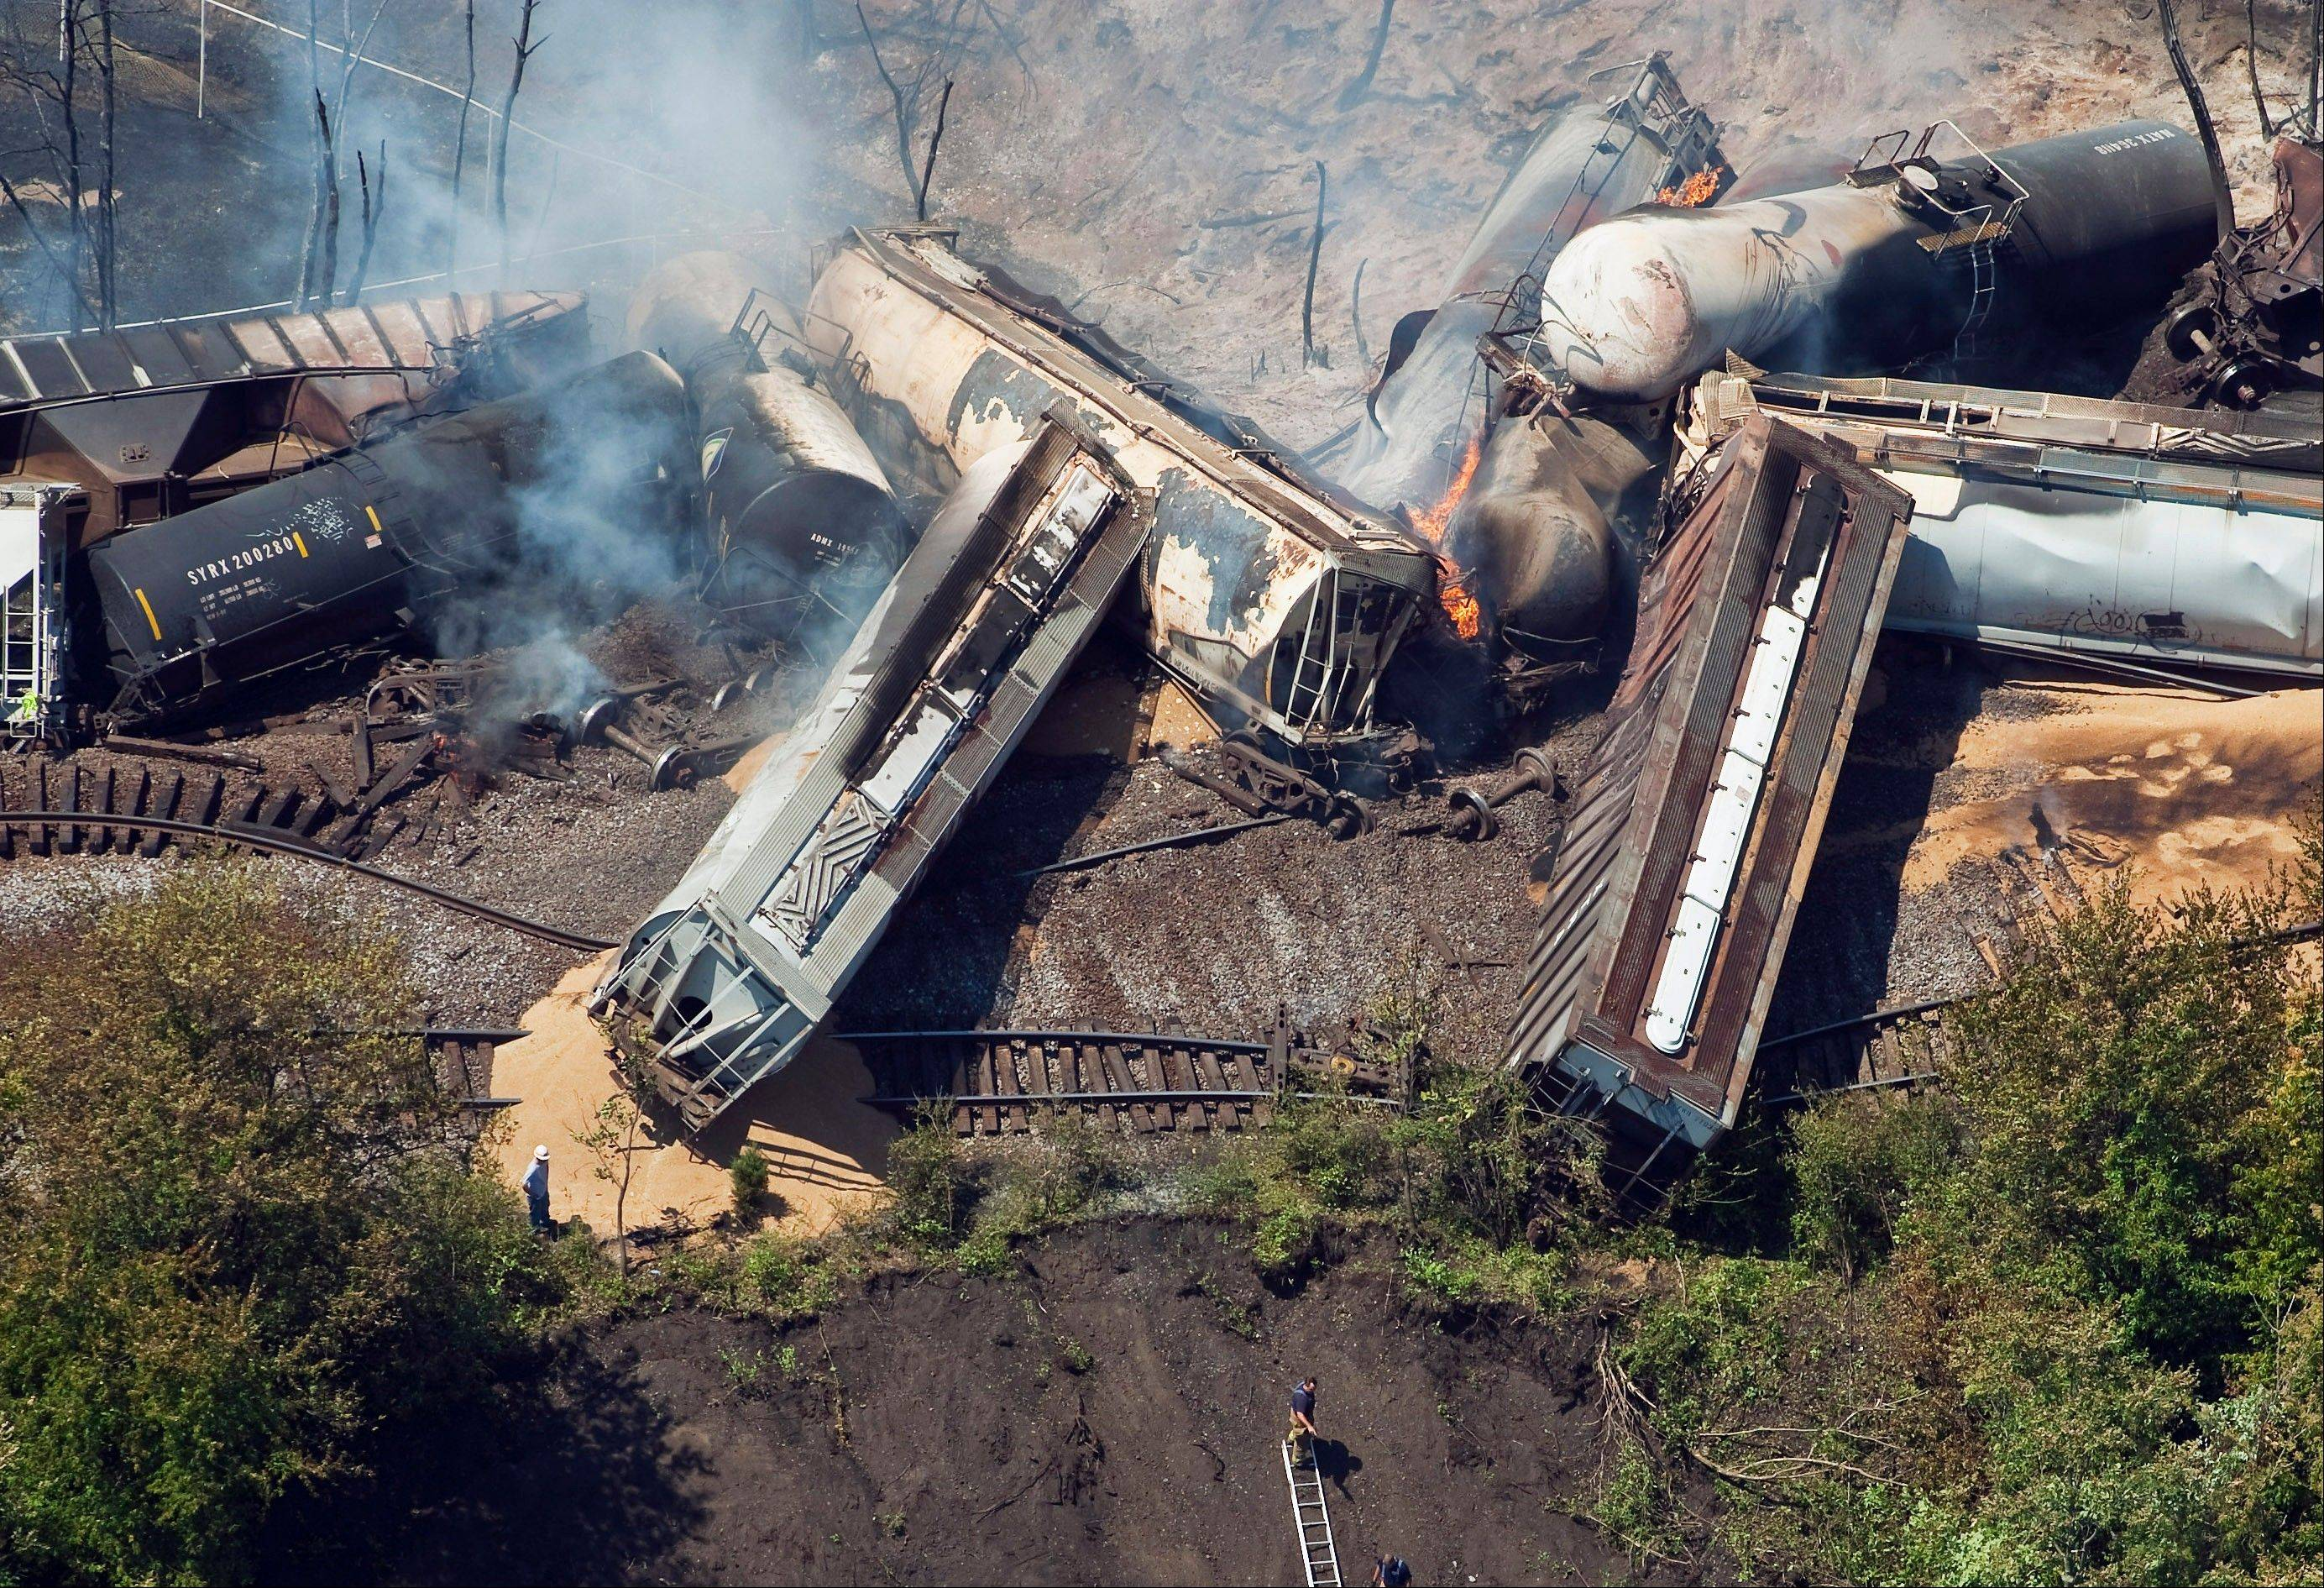 This July 11, 2012 aerial file photo, a freight train is seen after an early morning derailment in Columbus, Ohio. Part of the freight train carrying ethanol derailed and caught fire, shooting flames skyward into the darkness and prompting the evacuation of a mile-wide area as firefighters and hazardous materials crews monitored the blaze.